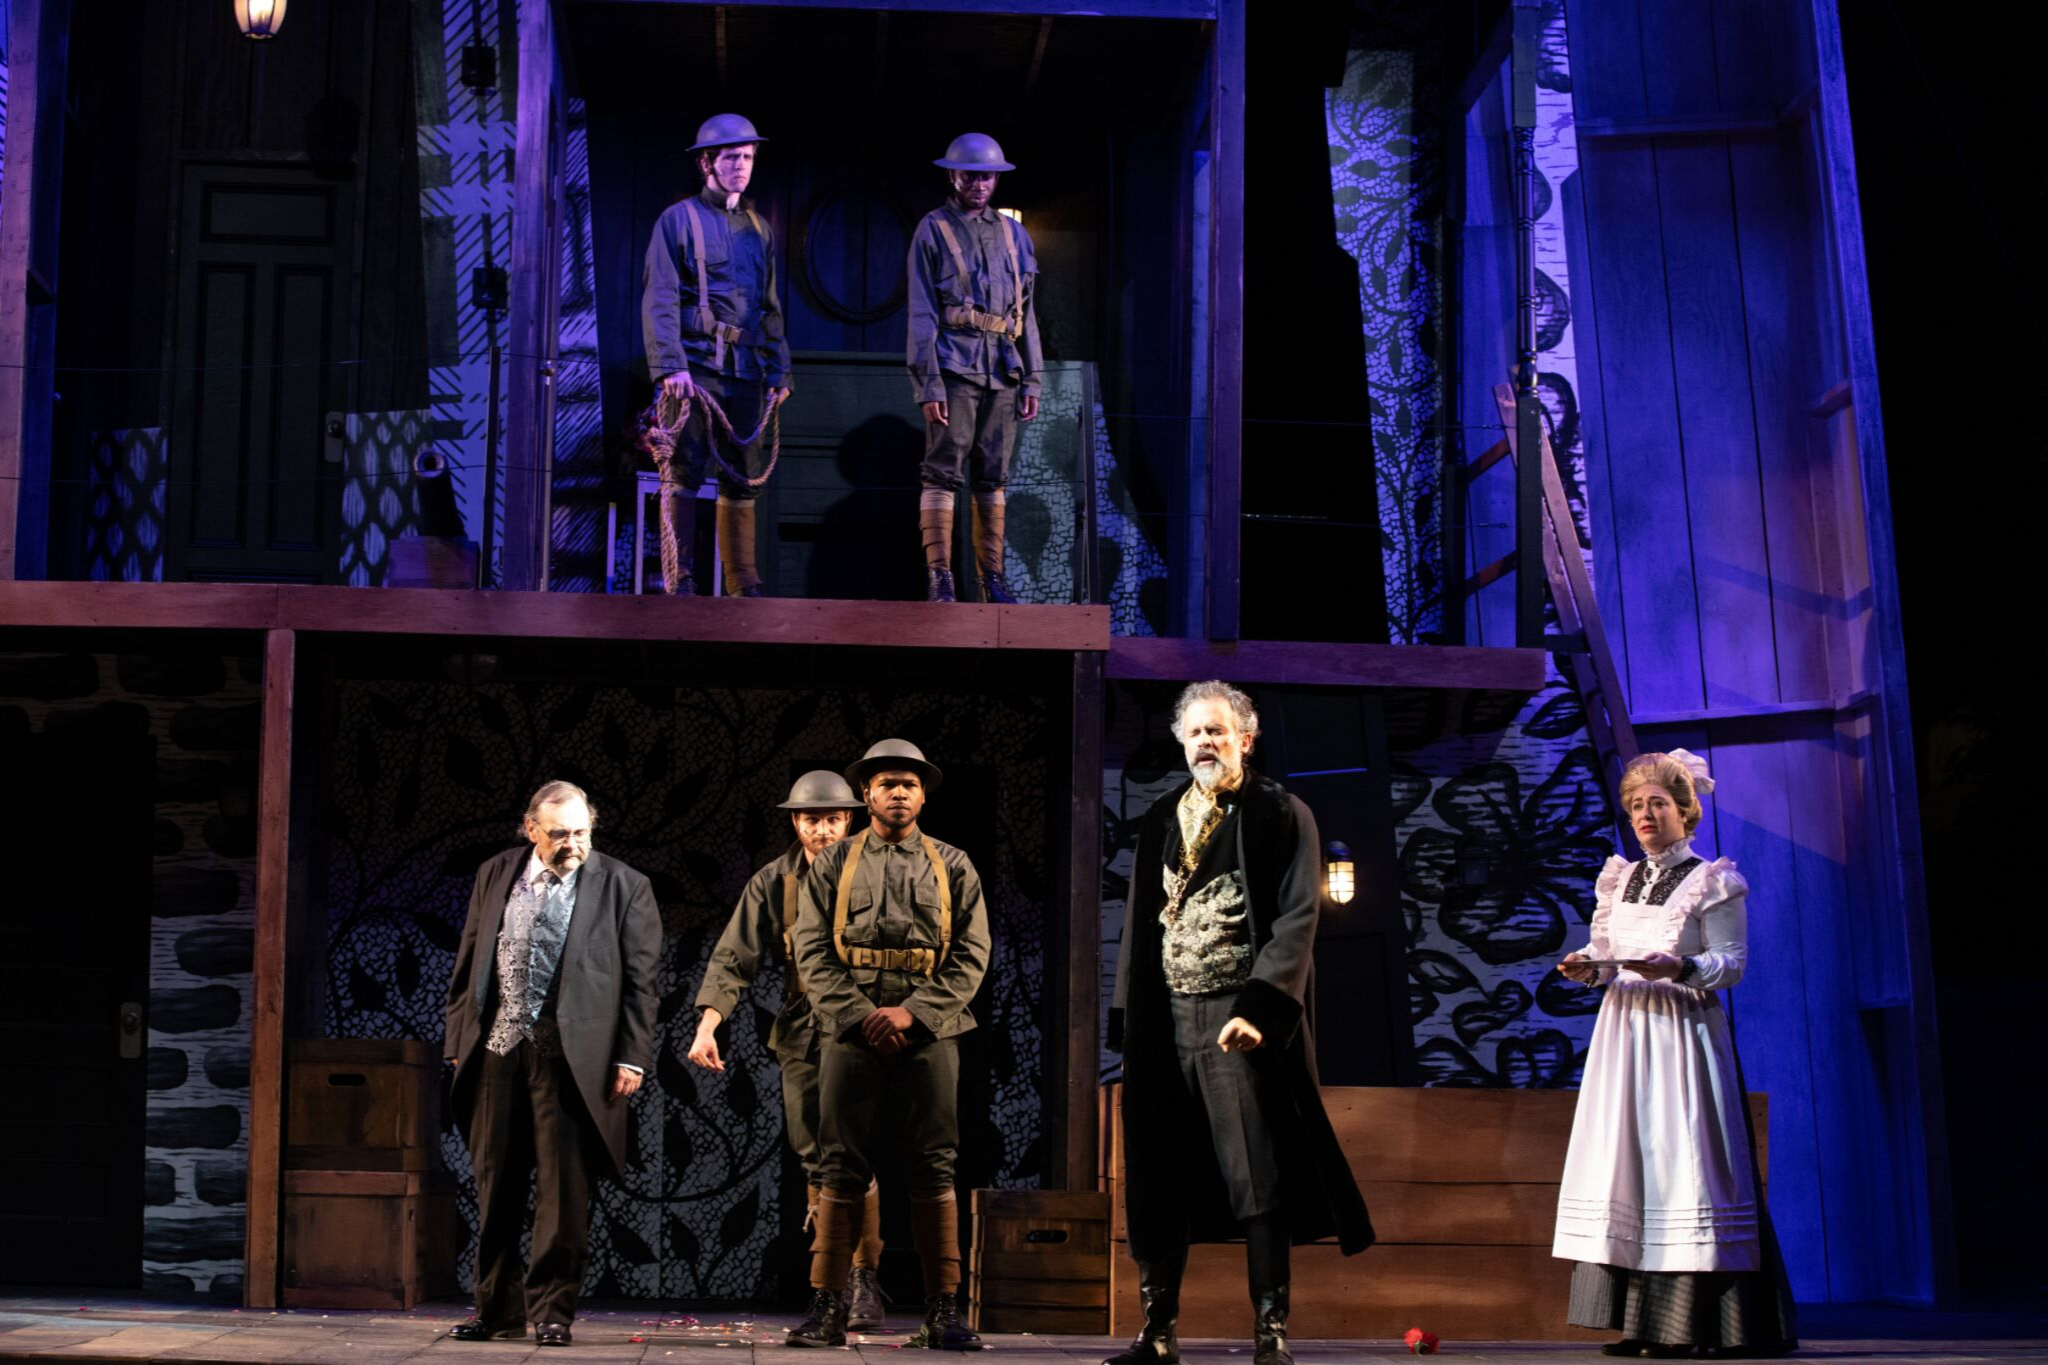 John Hardin (Soldier), Nigel Richards (Soldier), Remo Airaldi (Pisanio), Chet R. Davino (Soldier), Rodeny Witherspoon II (Soldier) and Tony Estrella (Cymbeline) in Cymbeline, Shakespeare on the Common 2019-Photo by Evgenia Eliseeva